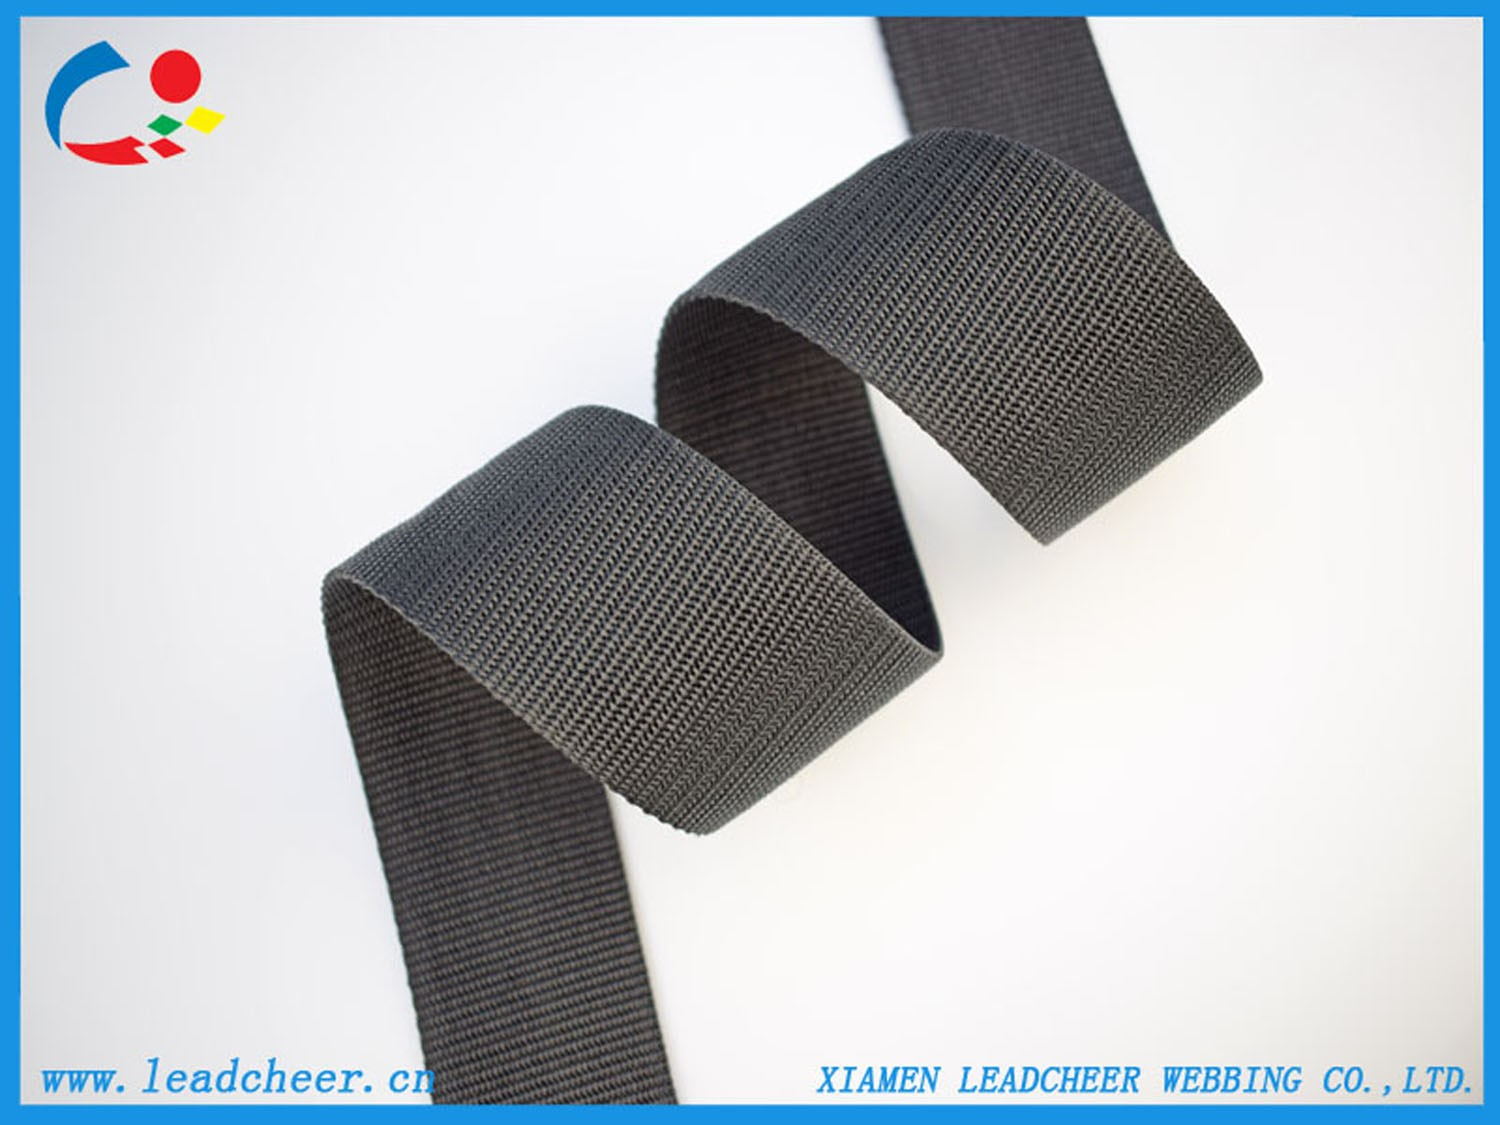 High quality PP Bag Webbing Quotes,China PP Bag Webbing Factory,PP Bag Webbing Purchasing